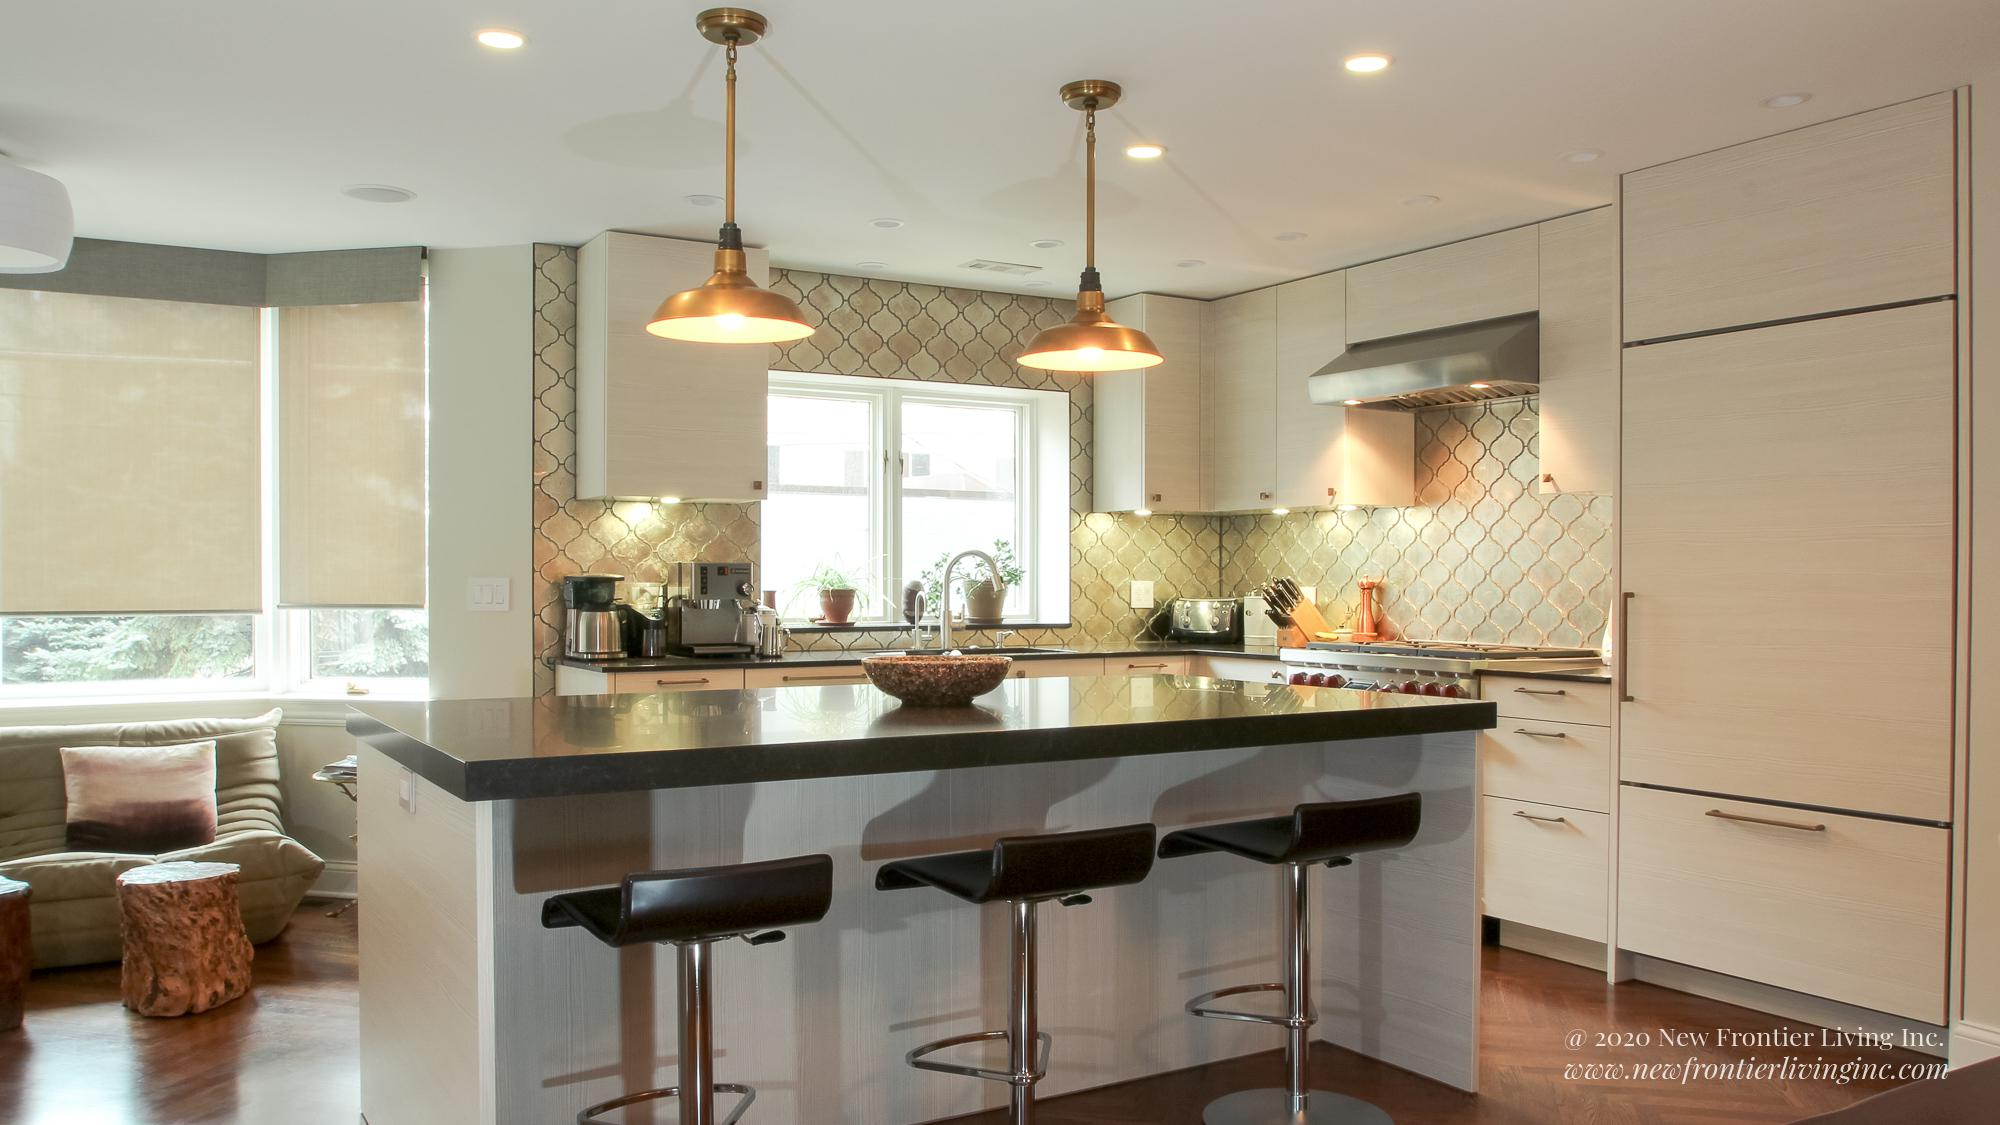 Cream kitchen with black countertops with an island, view toward windows, long pendant lighting and bar stools